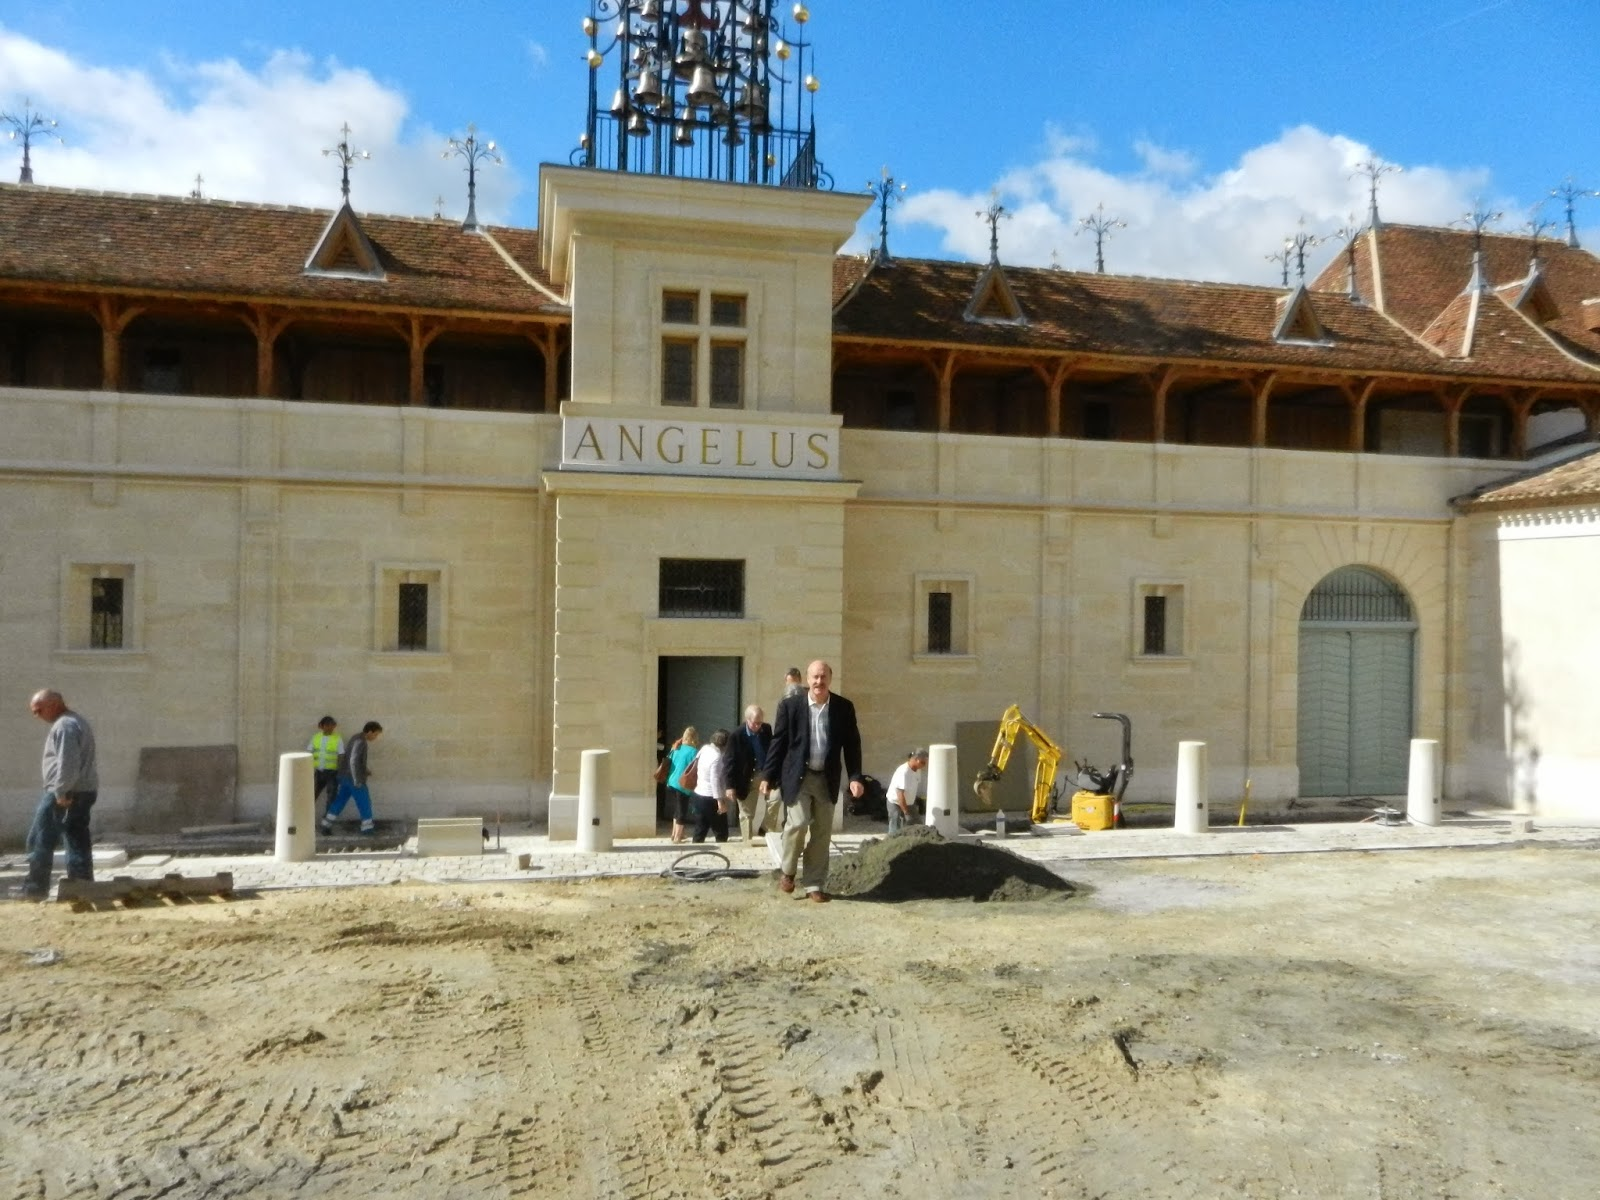 Schiller wine visiting a holy construction site for Chateau angelus